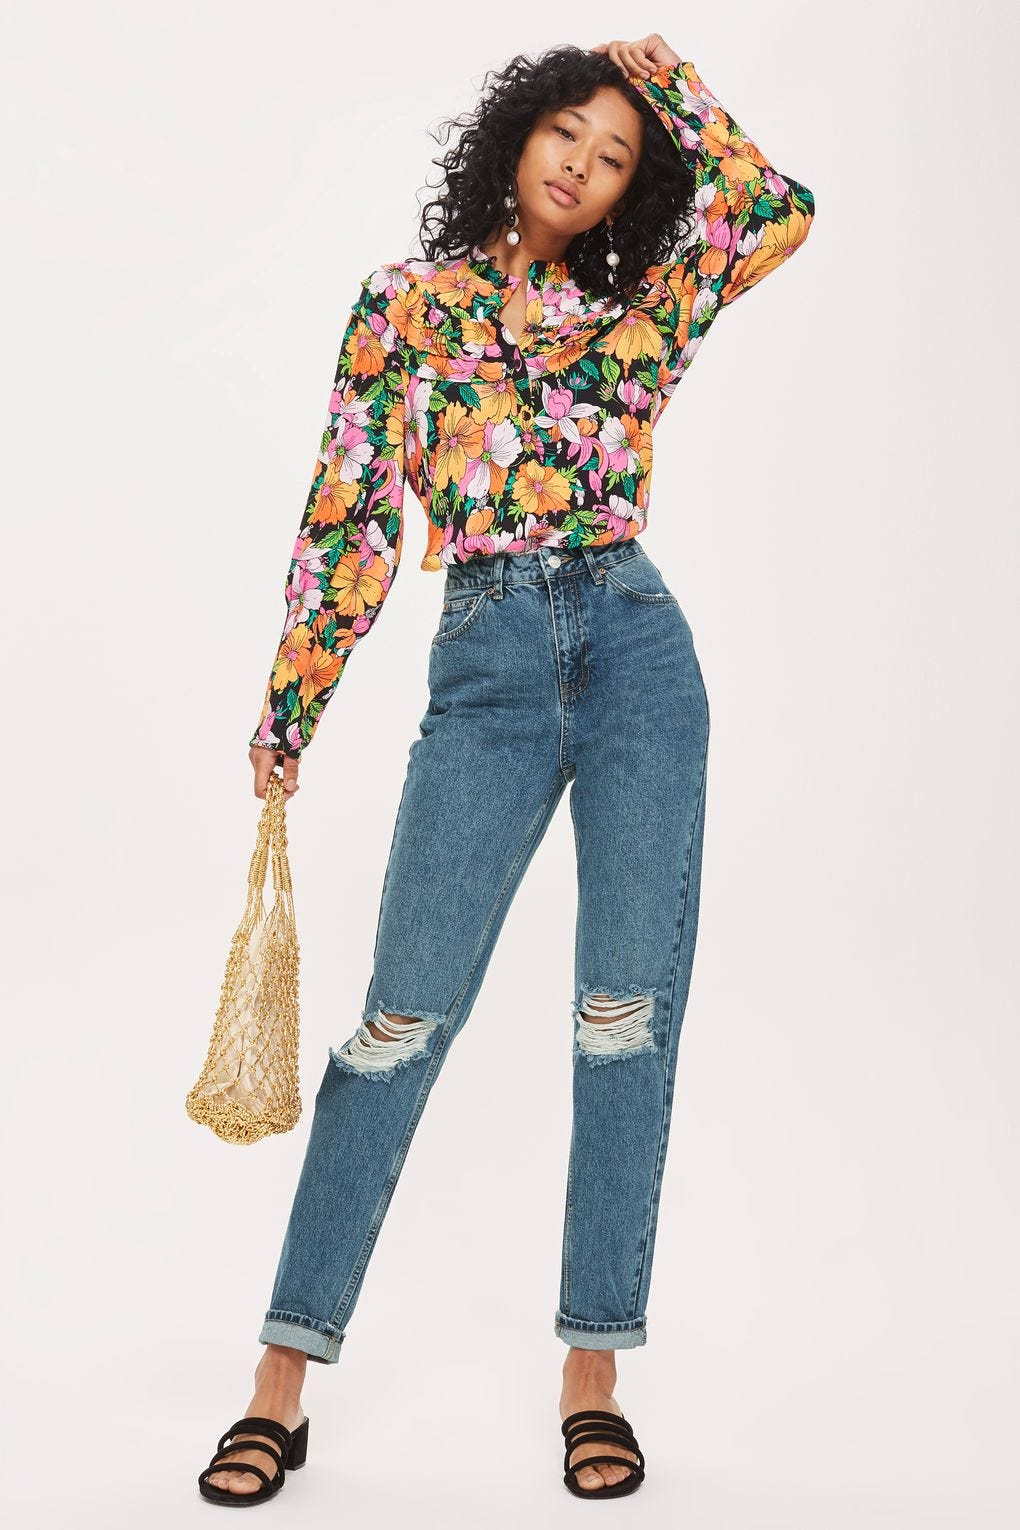 fea3805a Best High Waisted Jeans And Denim Styles For Women